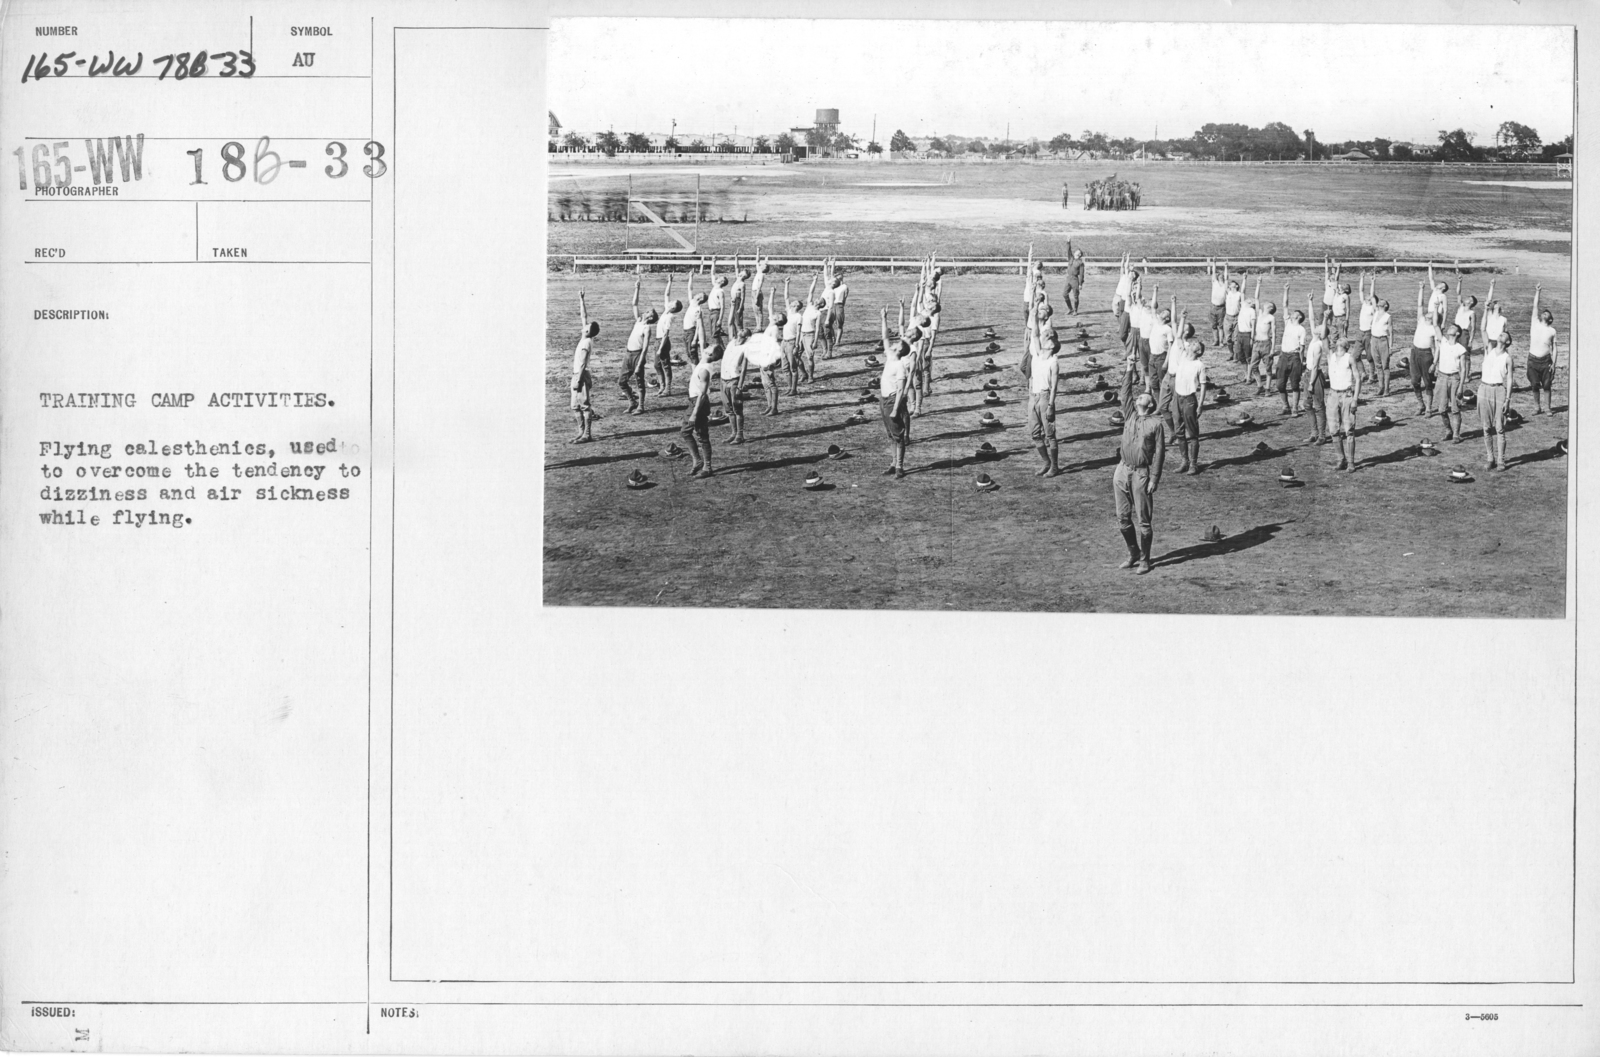 Airplanes - Miscellaneous - Training camp activities. Flying calisthenics, used to overcome the tendency to dizziness and air sickness while flying